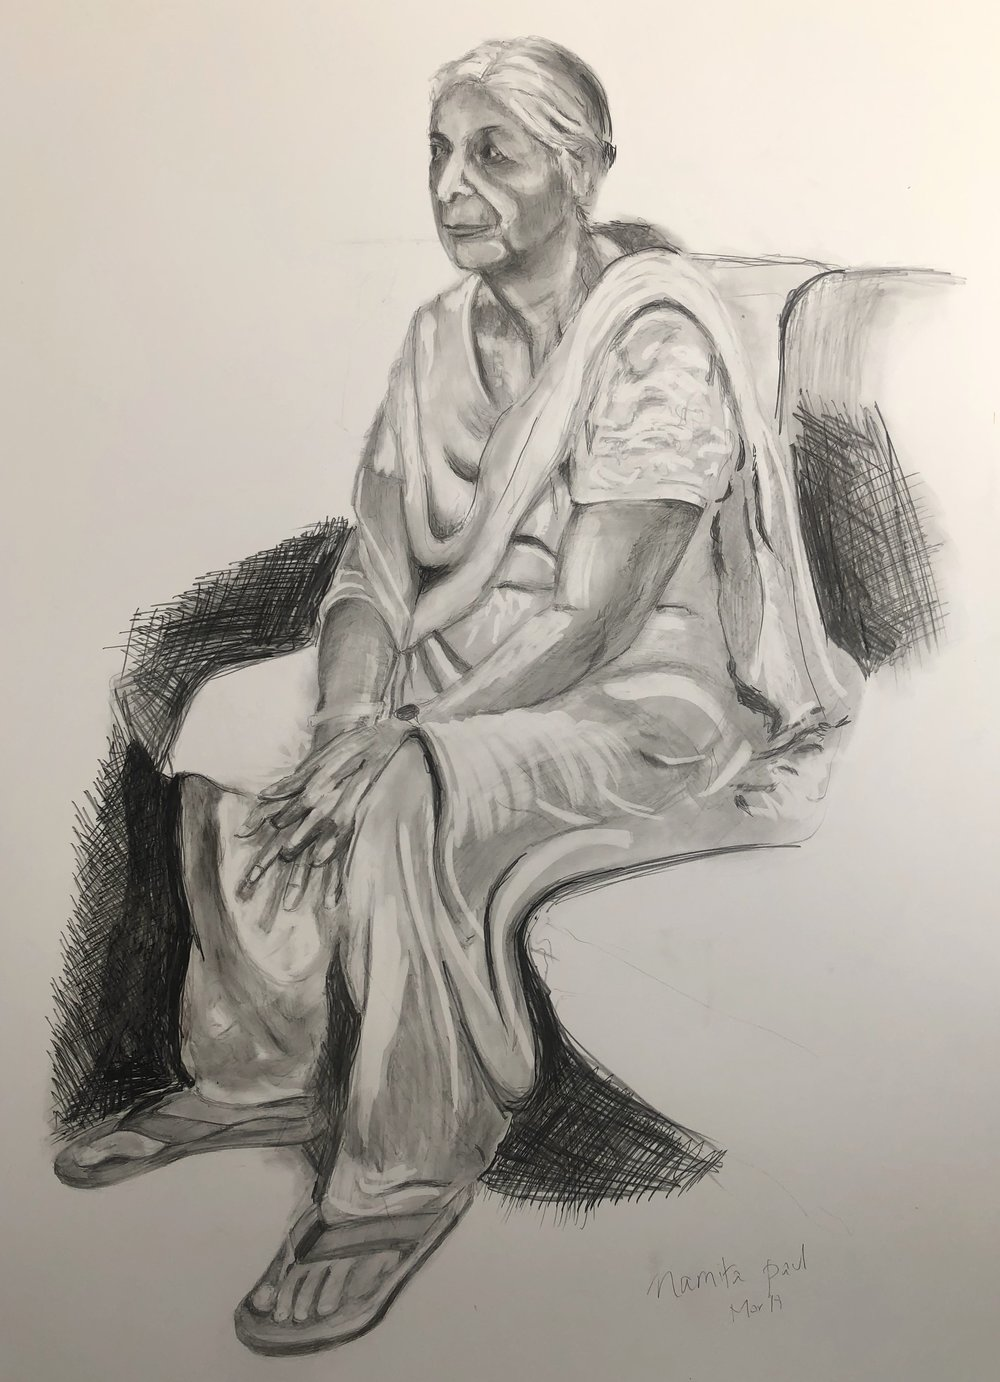 Blameless Lives Series I 40%22X20%22 pencil and charcoal on paper by Namita Paul.JPG